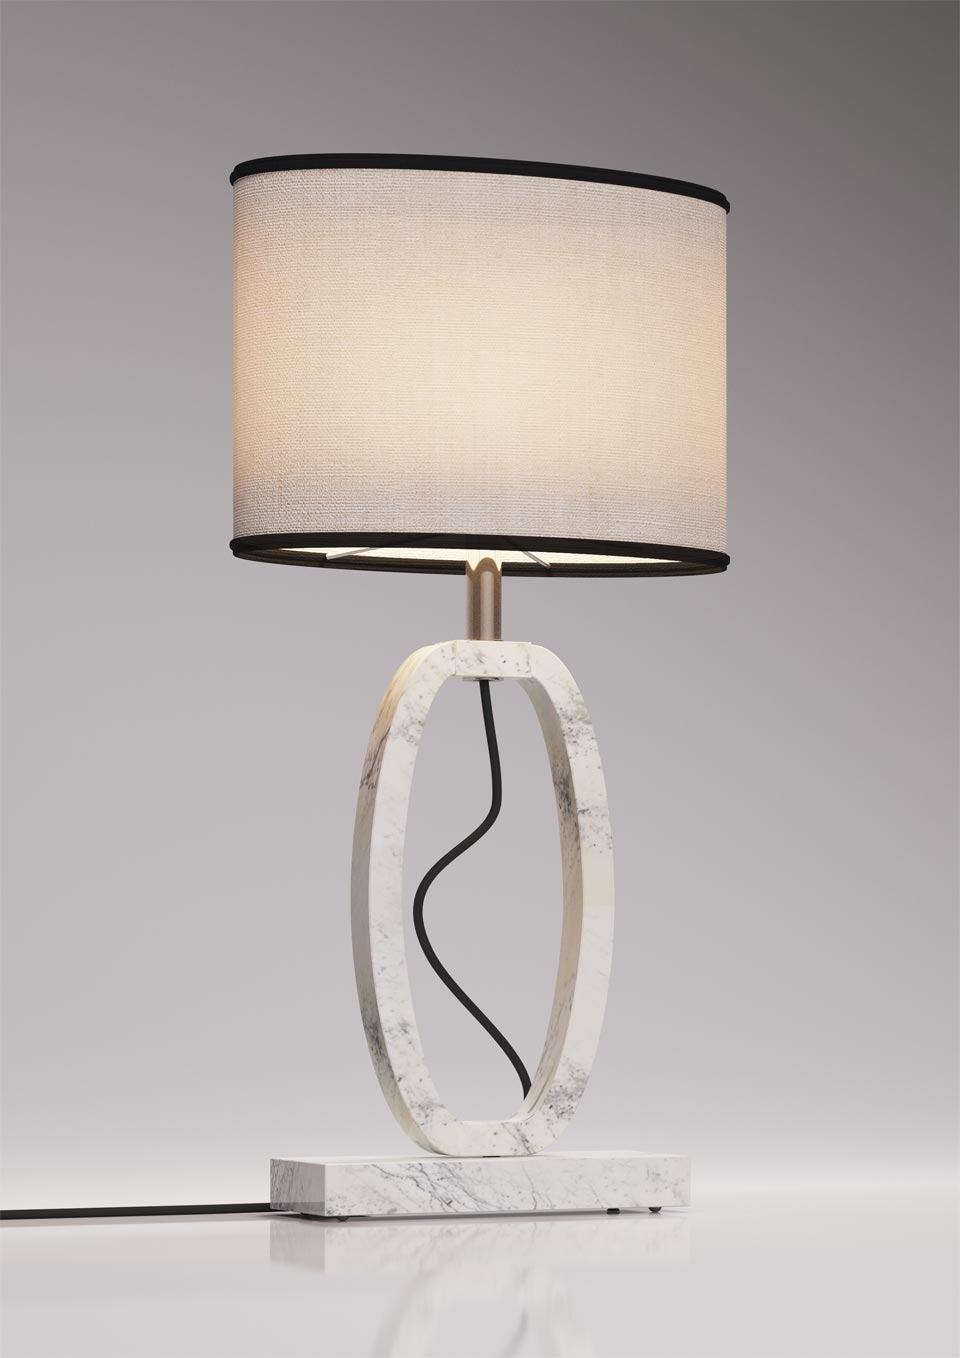 Small Deco lamp in Carrara marble. Matlight.